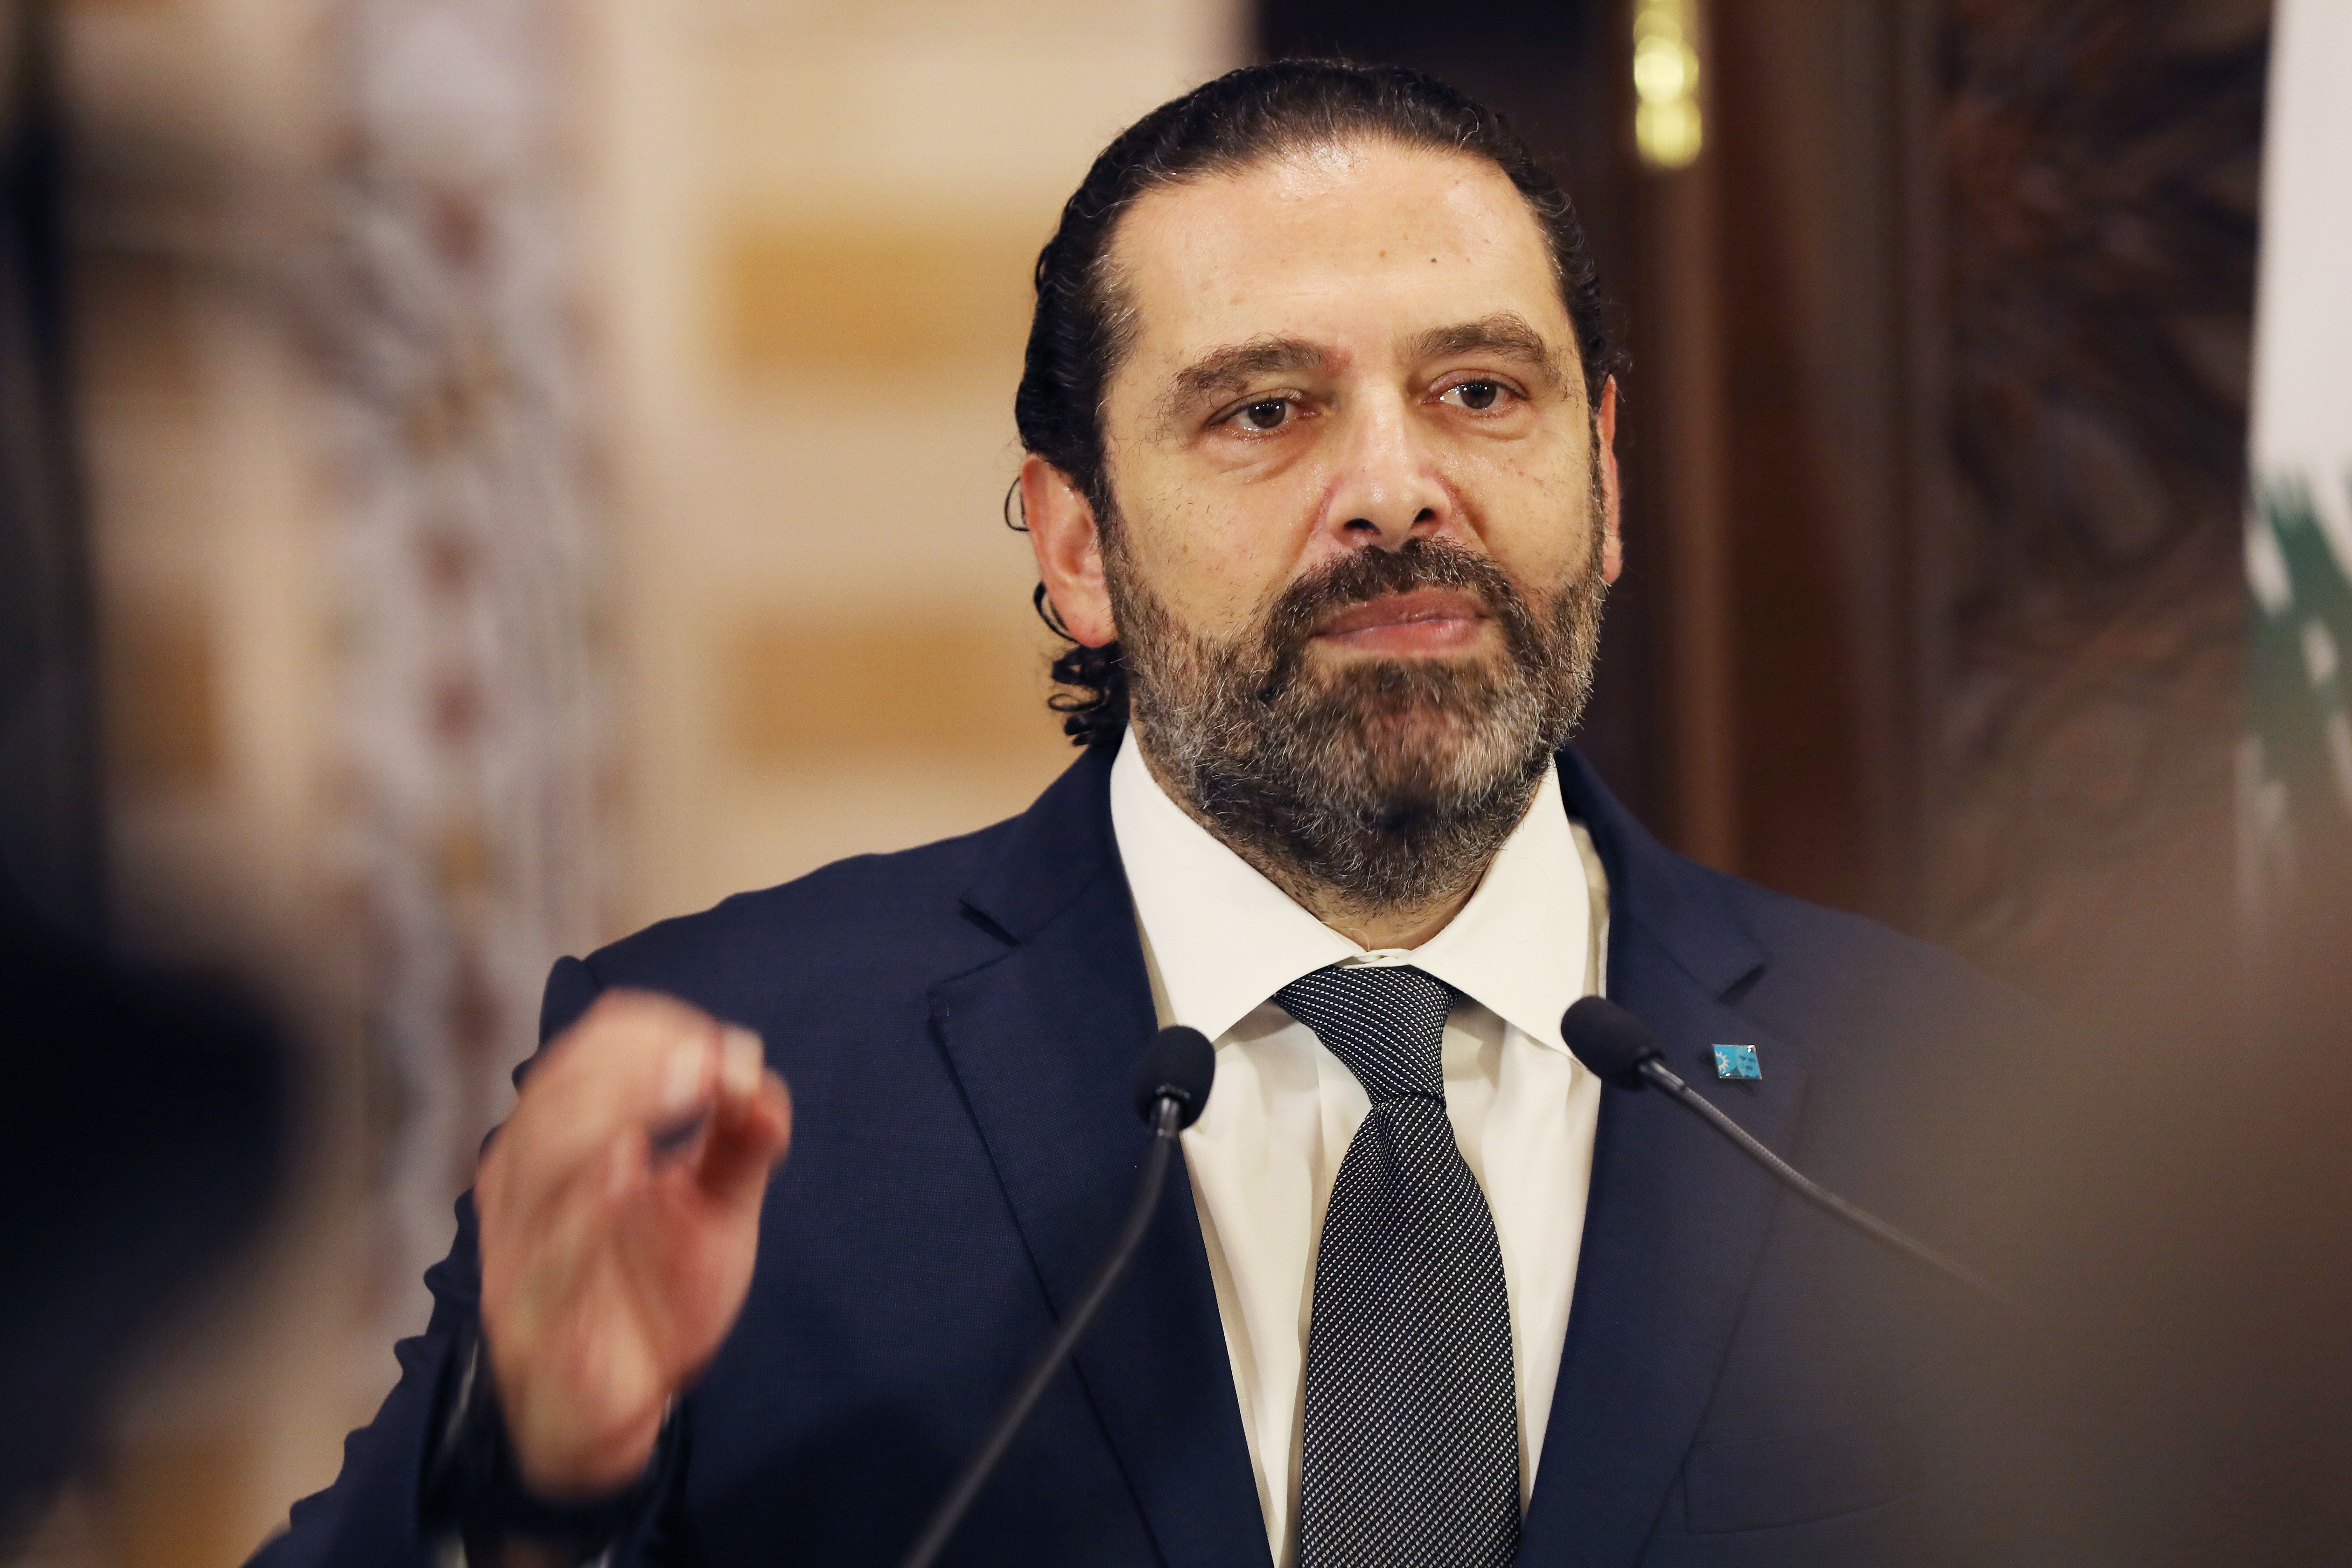 Press Conference for Pr Minister Saad Hariri 5